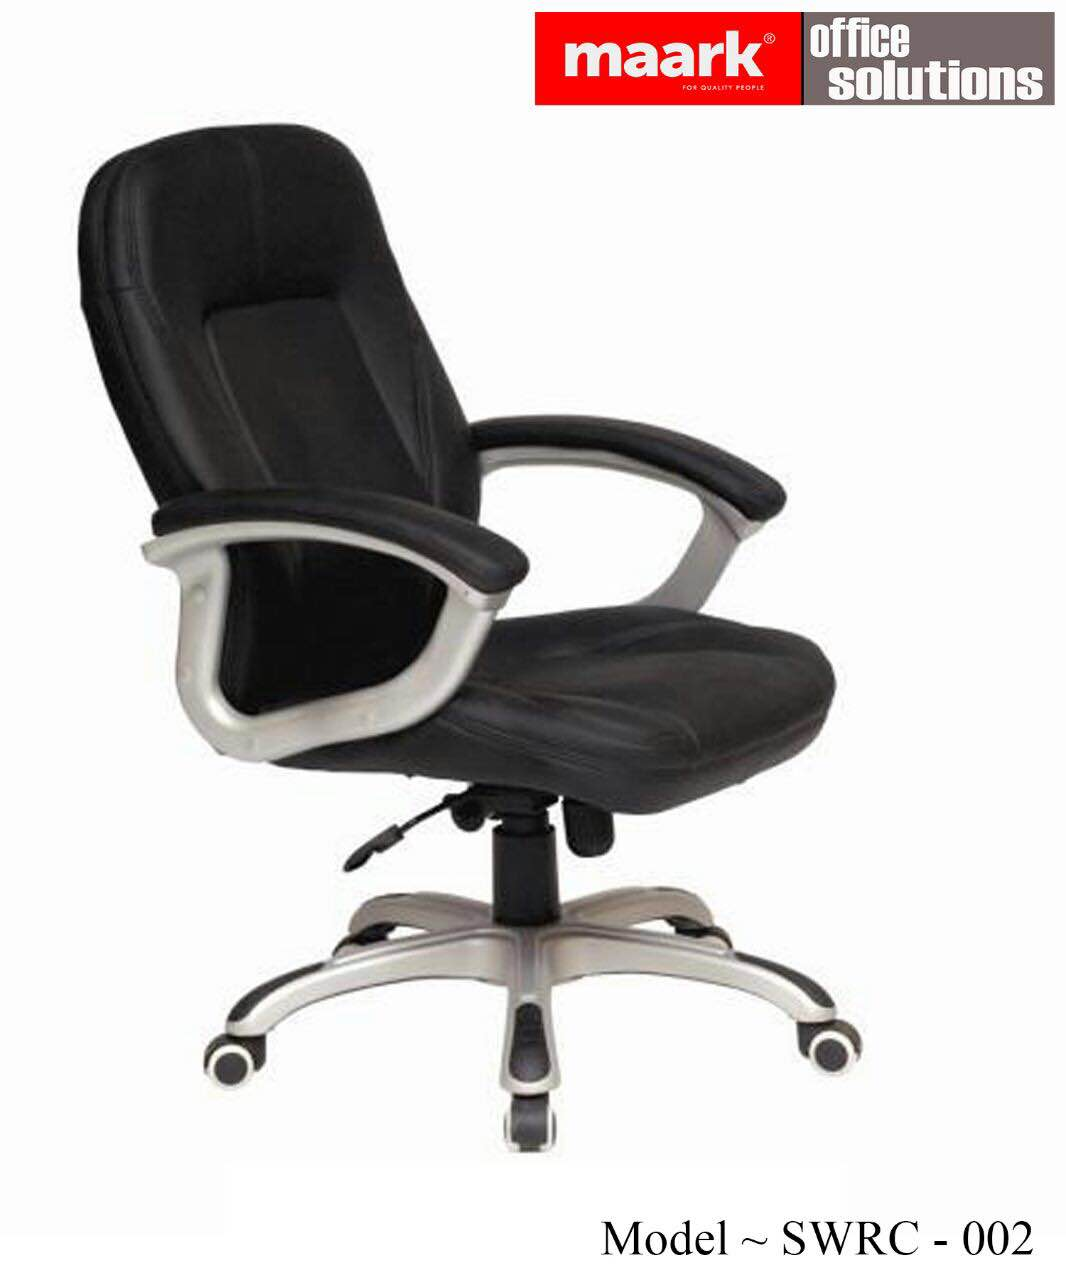 revolving chair india high tables and chairs adjustable back rest the maark trendz 4391 8030186397 in